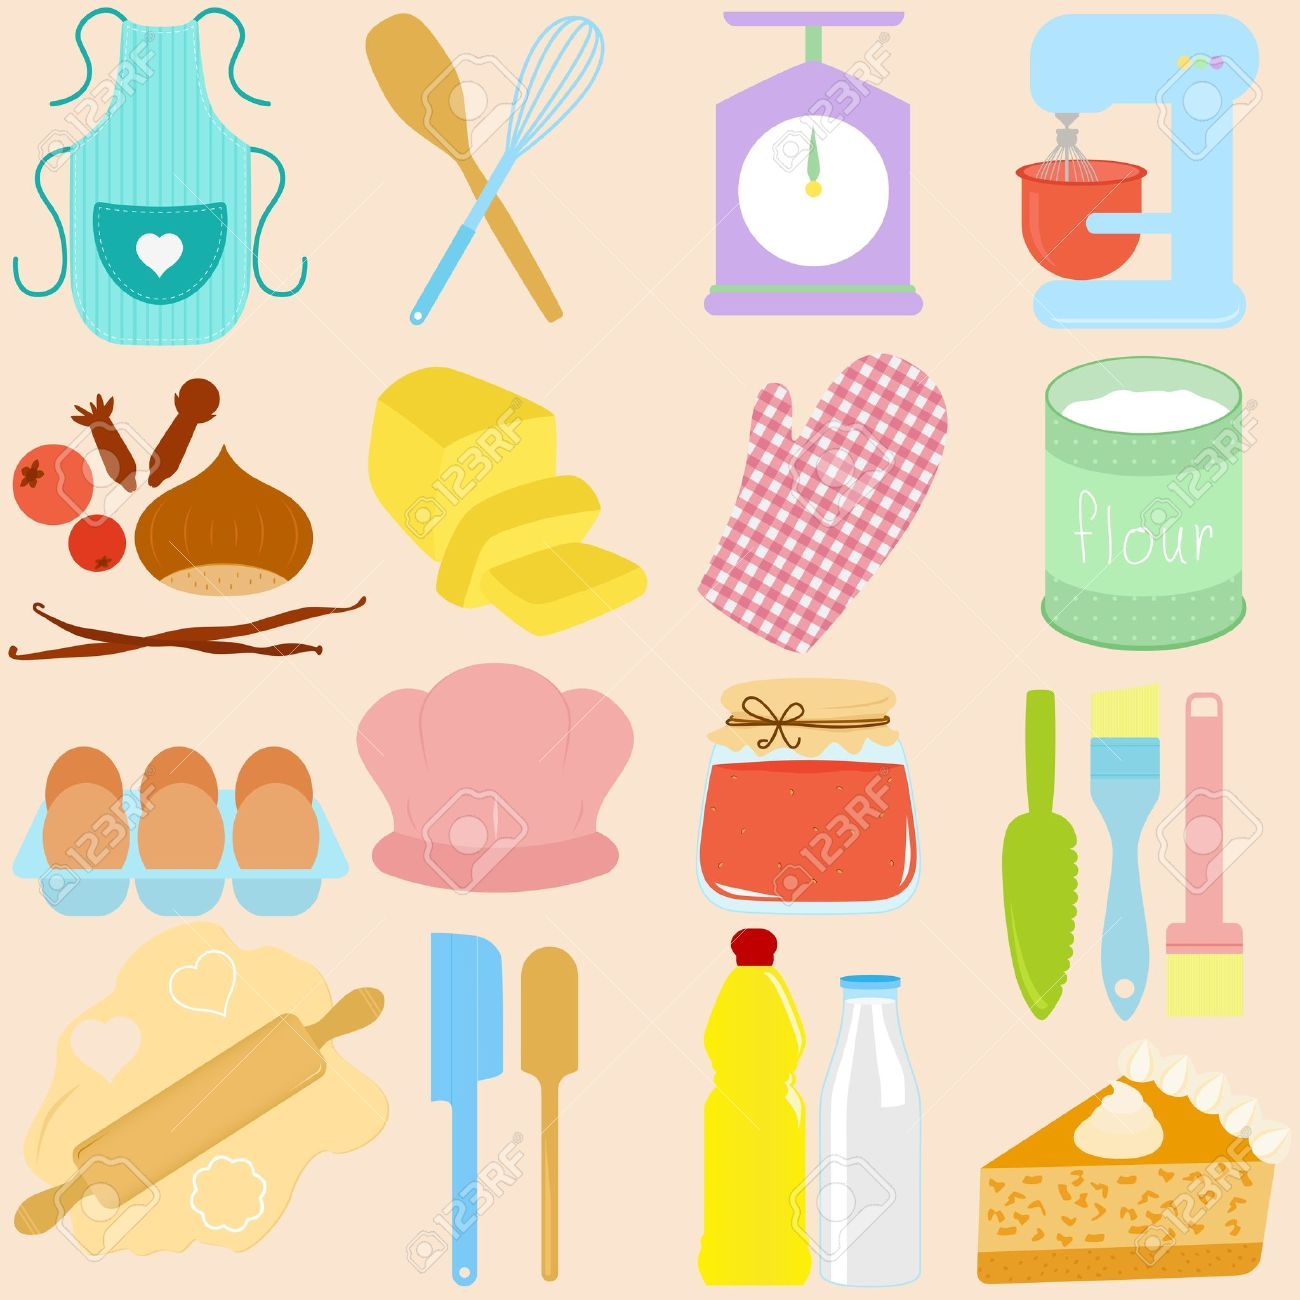 Pastry Utensils Clipart Clipground